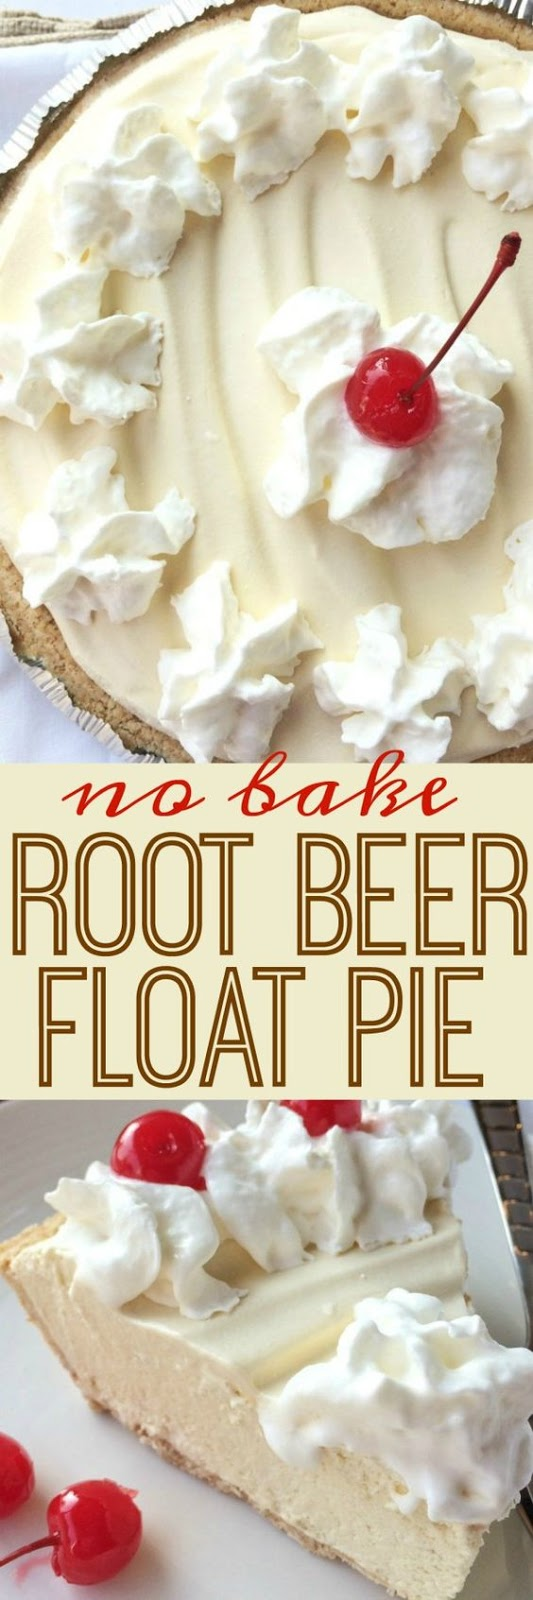 No Bake Root Beer Float Pie